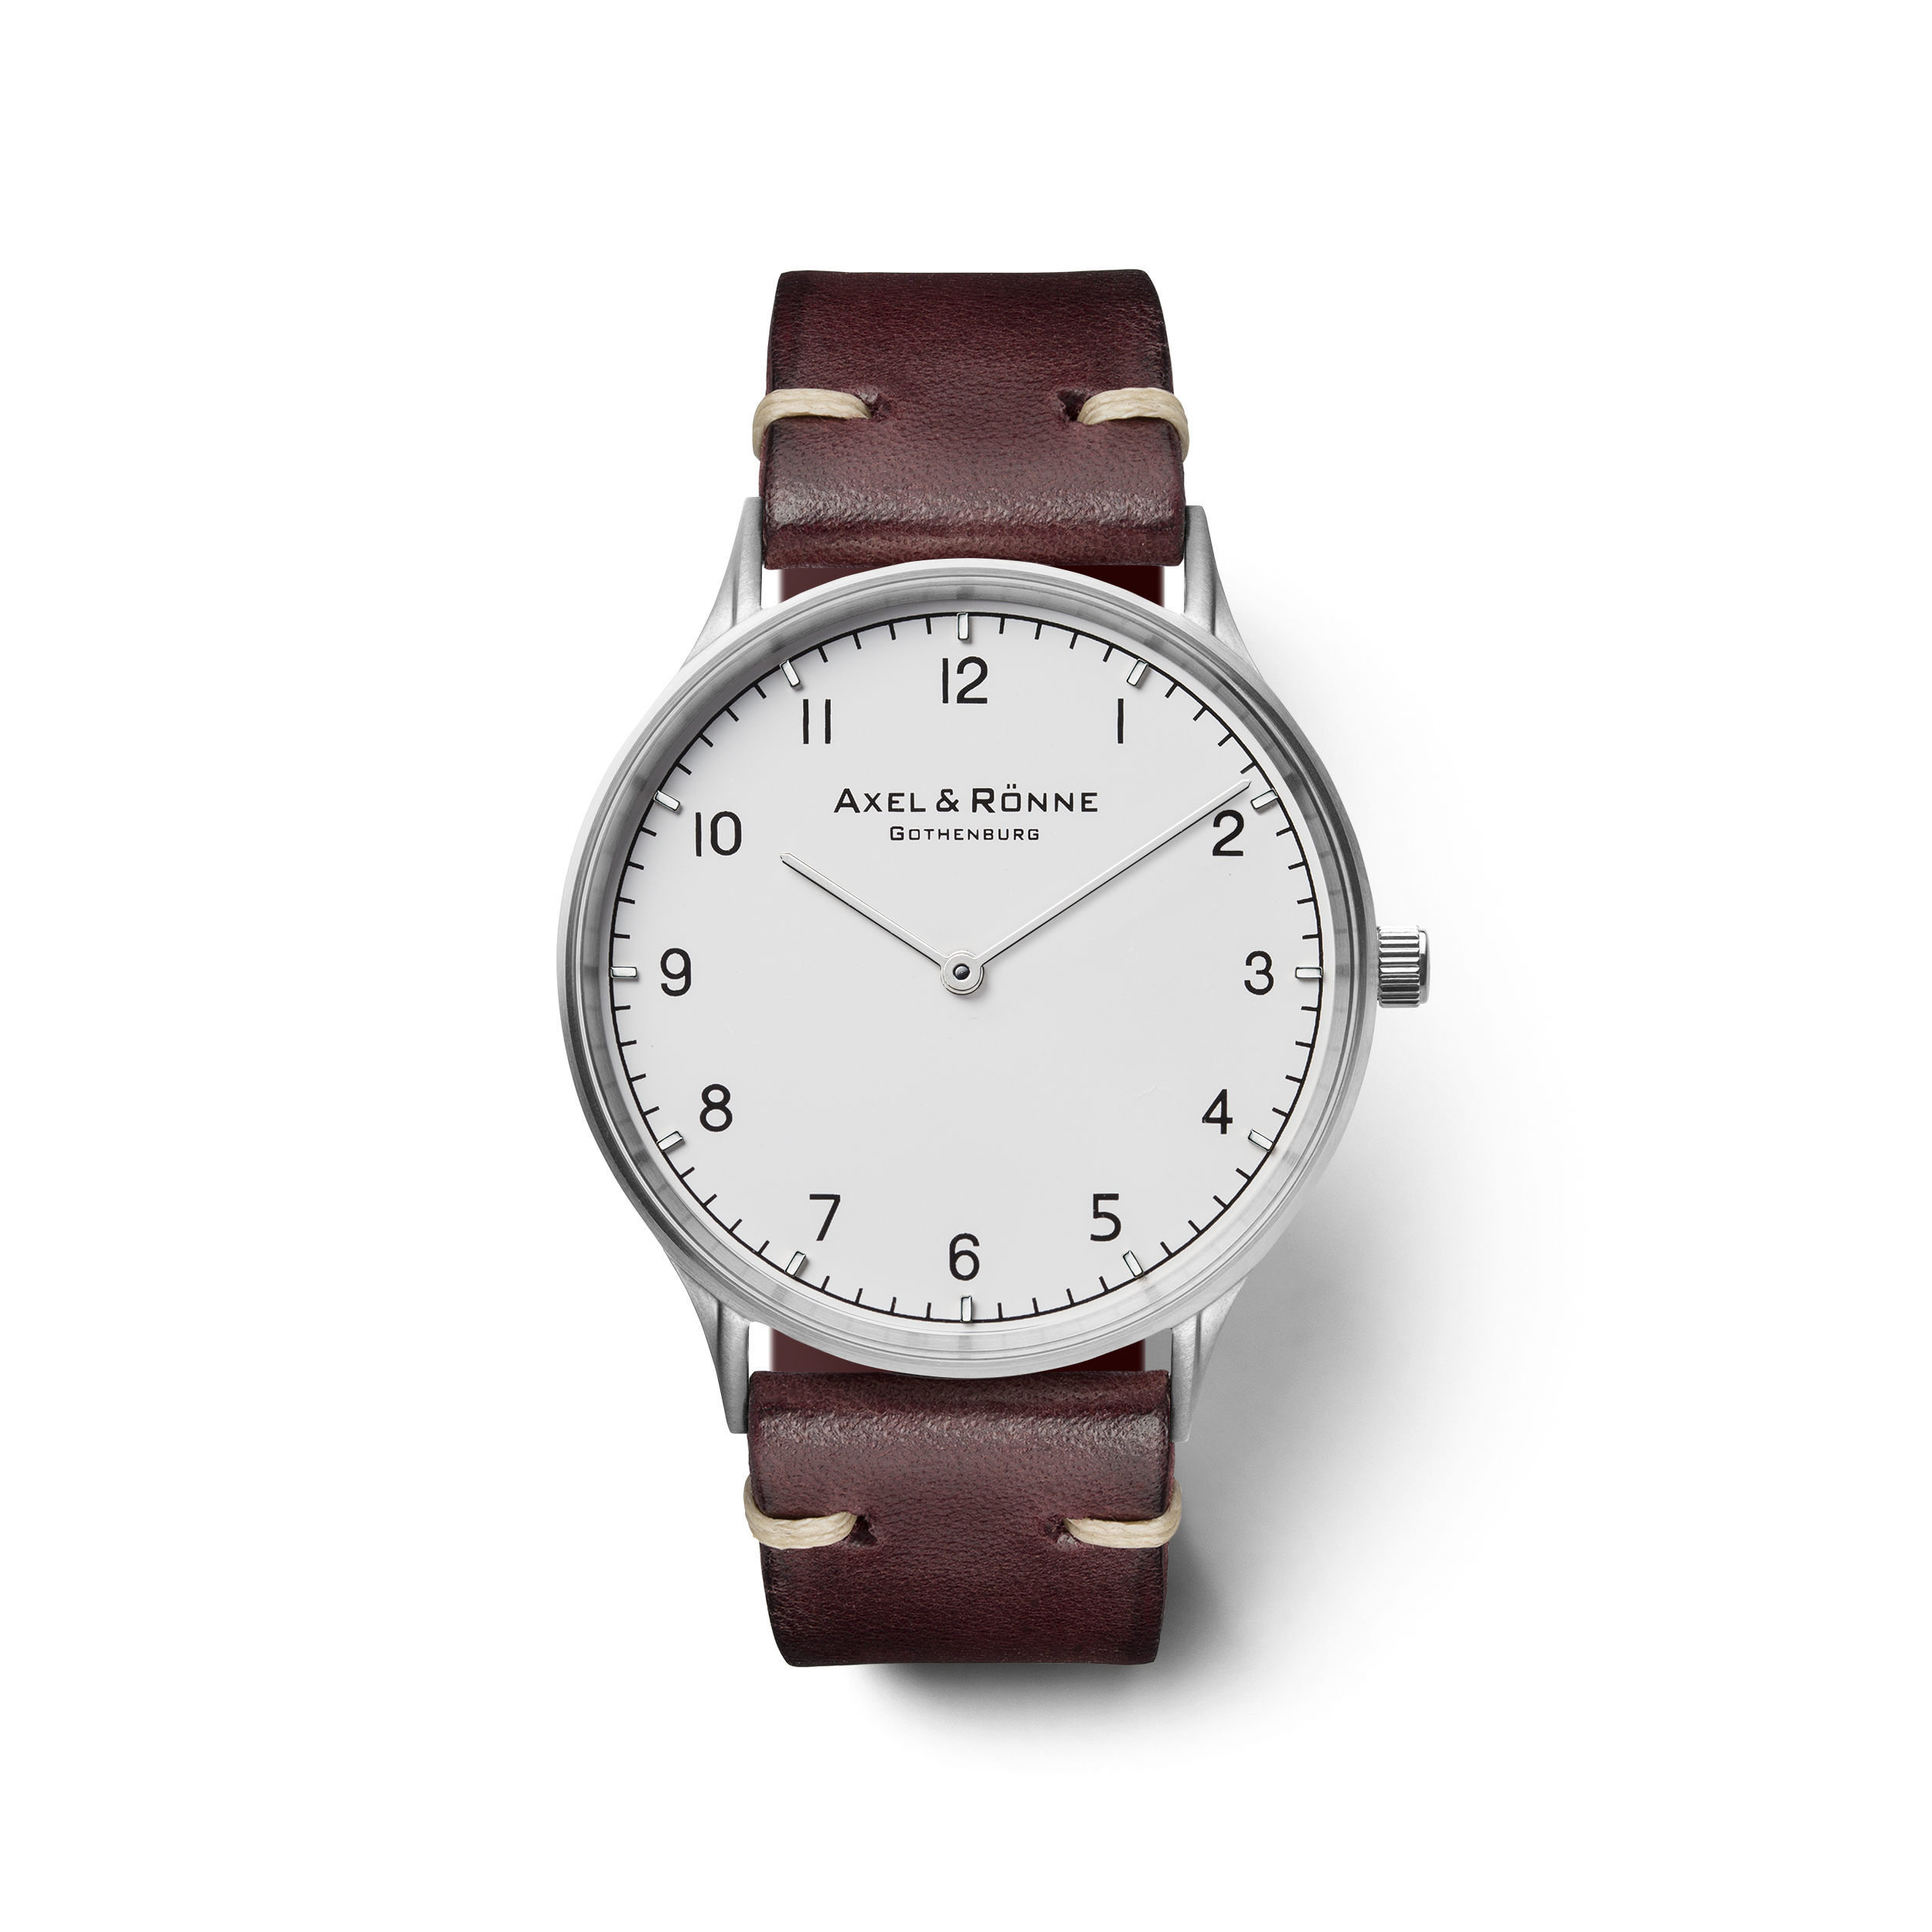 Axel&Rönne_Burgundy_Lookbook_Leather Straps_4